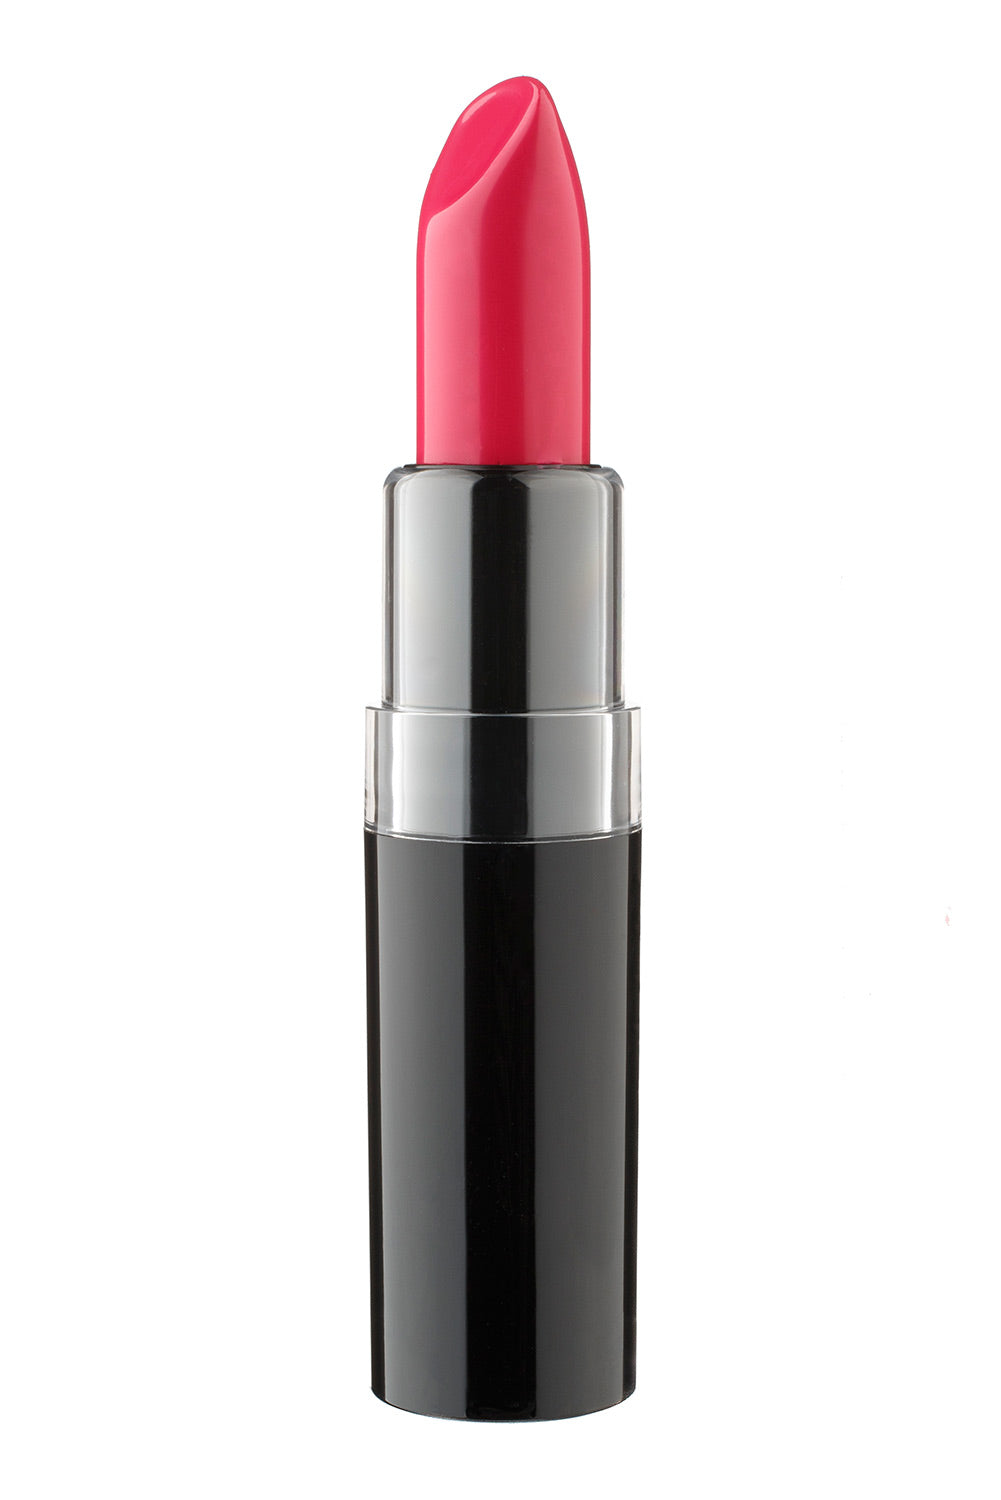 Type 4 Lipstick - Dragonberry